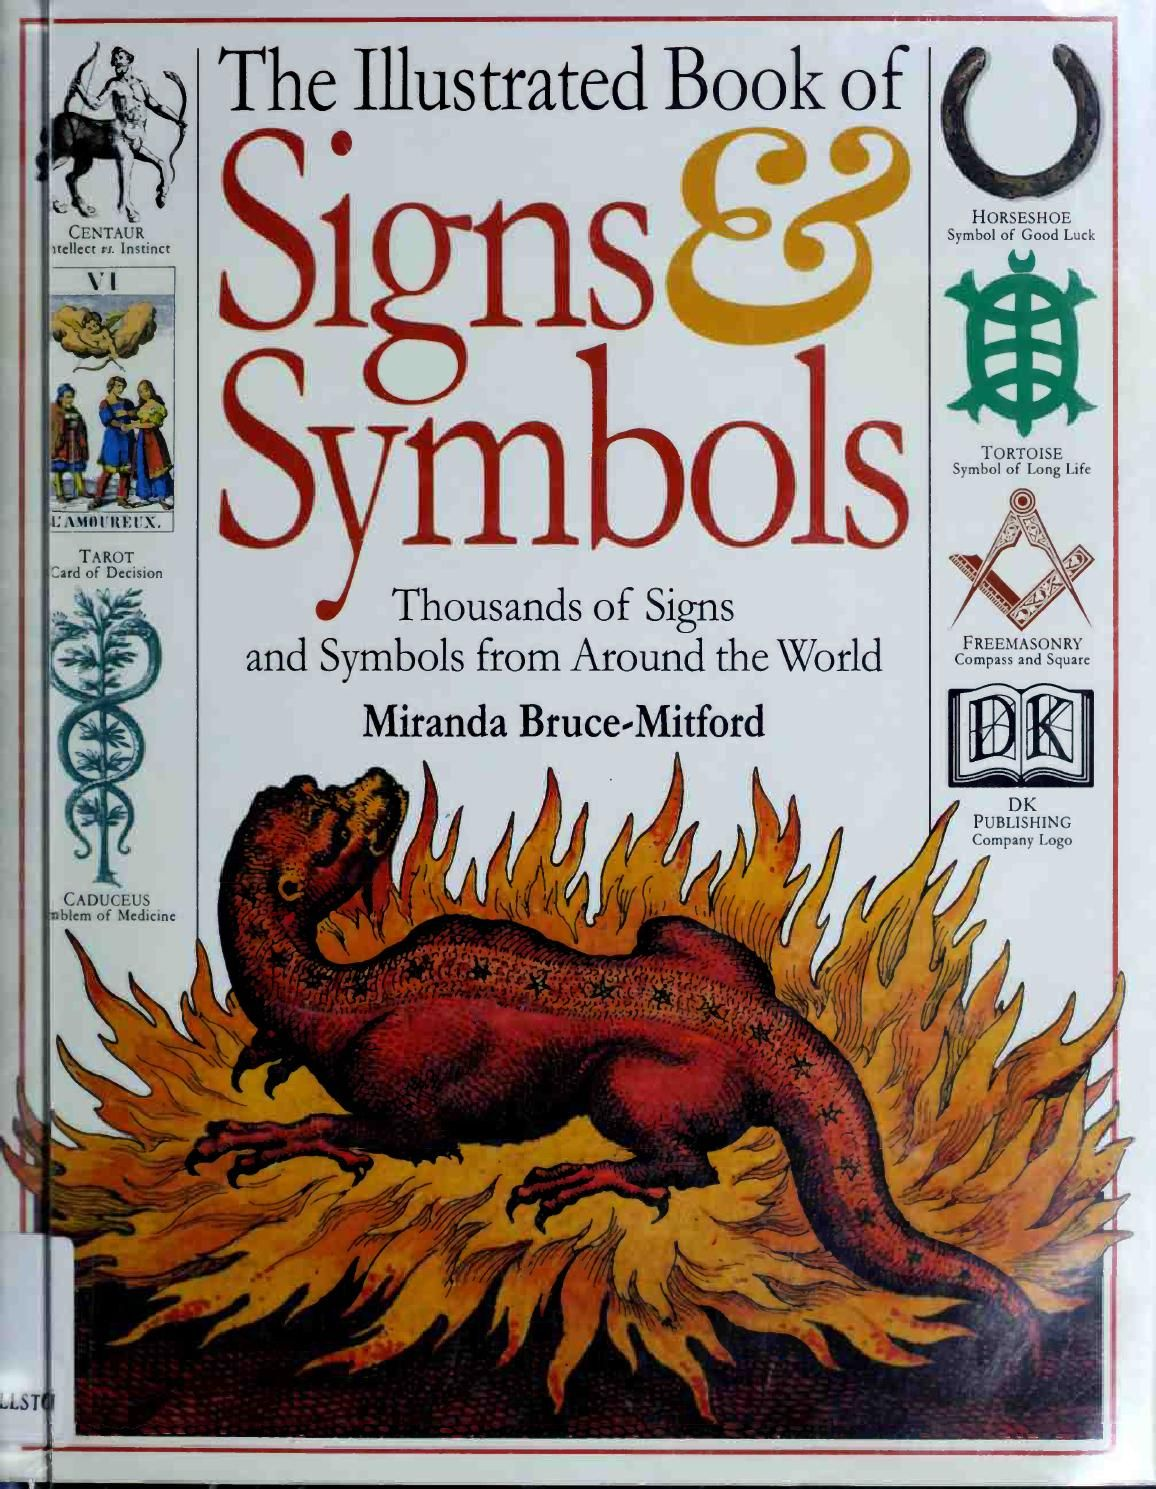 The illustrated book of signs and symbols by miranda bruce mitford the illustrated book of signs and symbols by miranda bruce mitford thousands of signs and symbols from around the world an ebook from dk publish fandeluxe